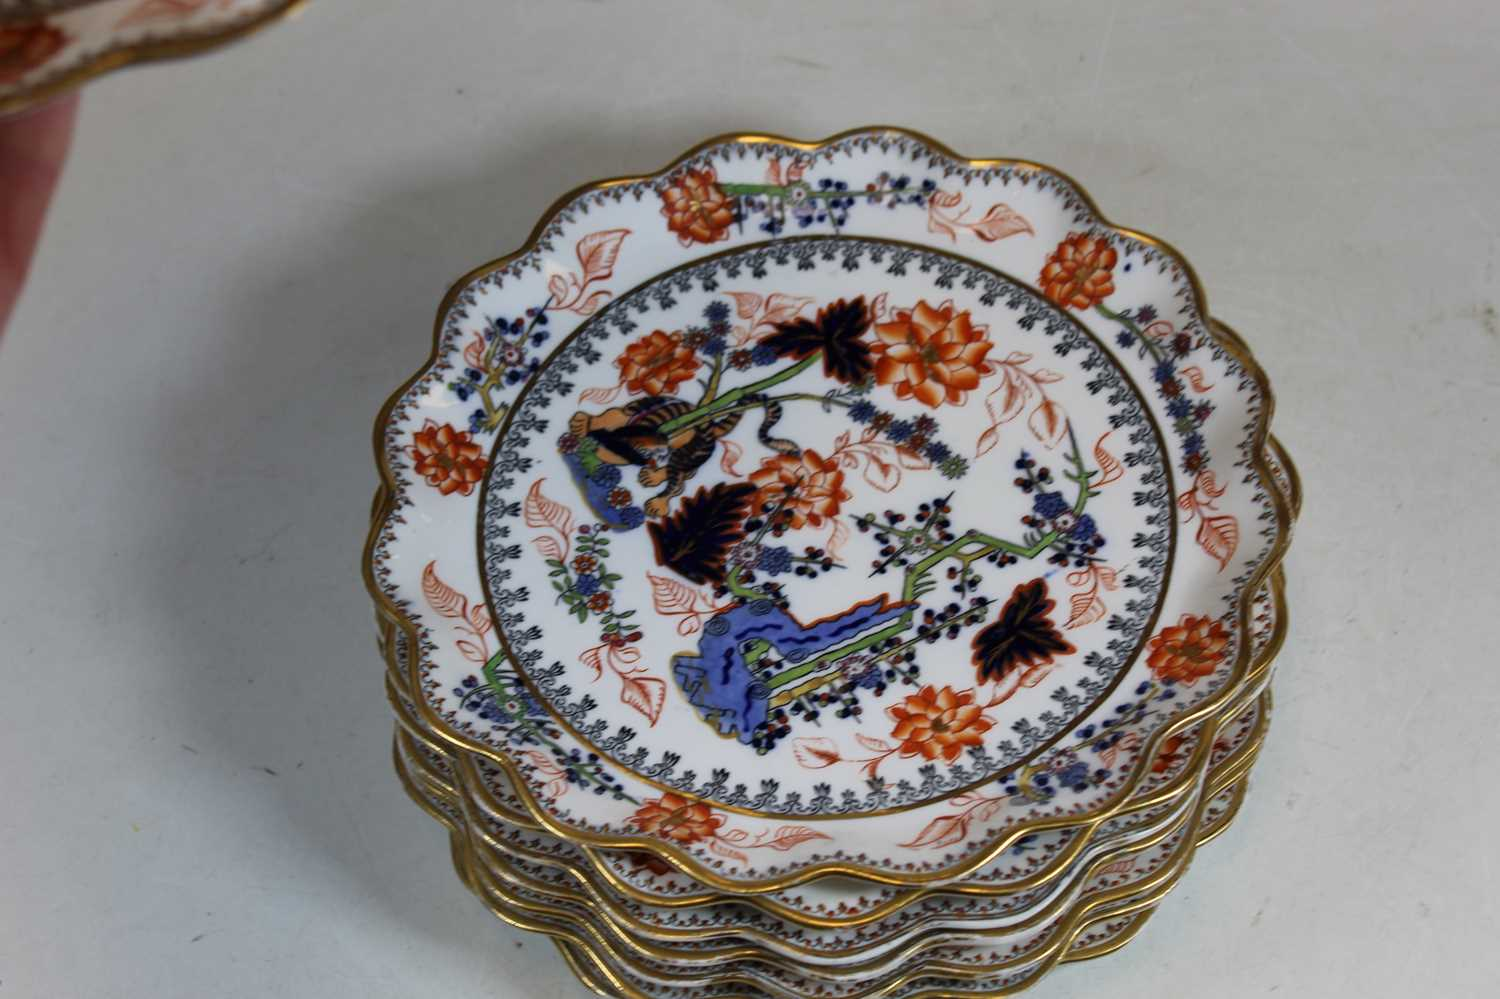 A 19th century Coalport part dessert service, decorated with a dragon amidst flowers and foliage, - Image 2 of 3